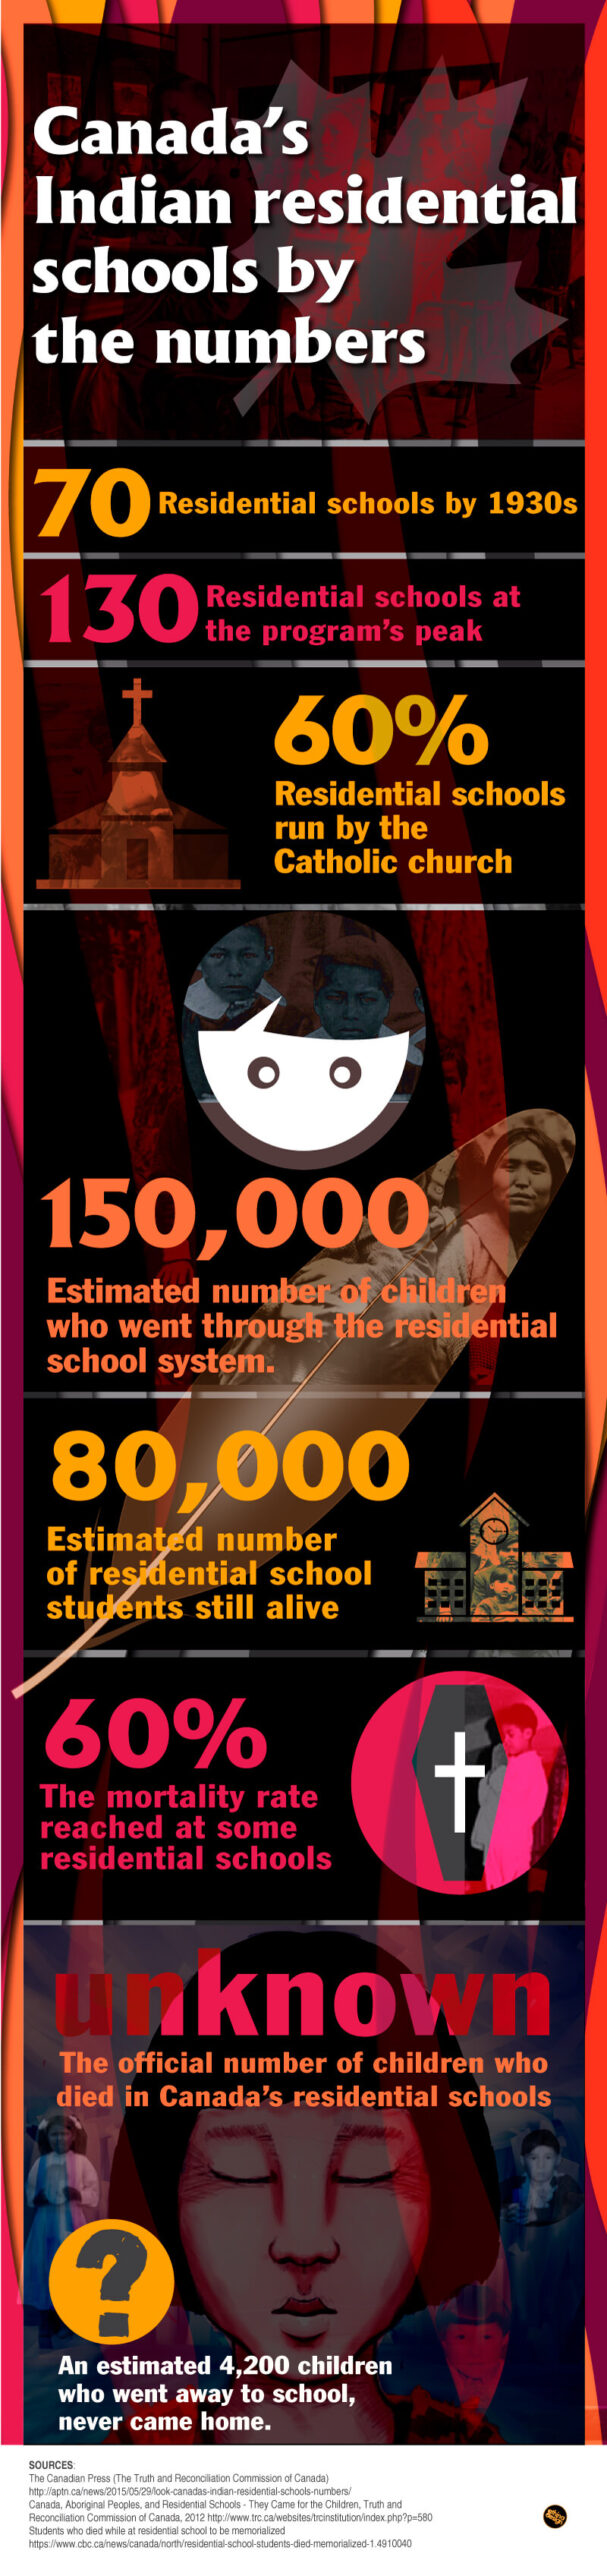 canadas-indian-residential-schools-by-numbers-infographic